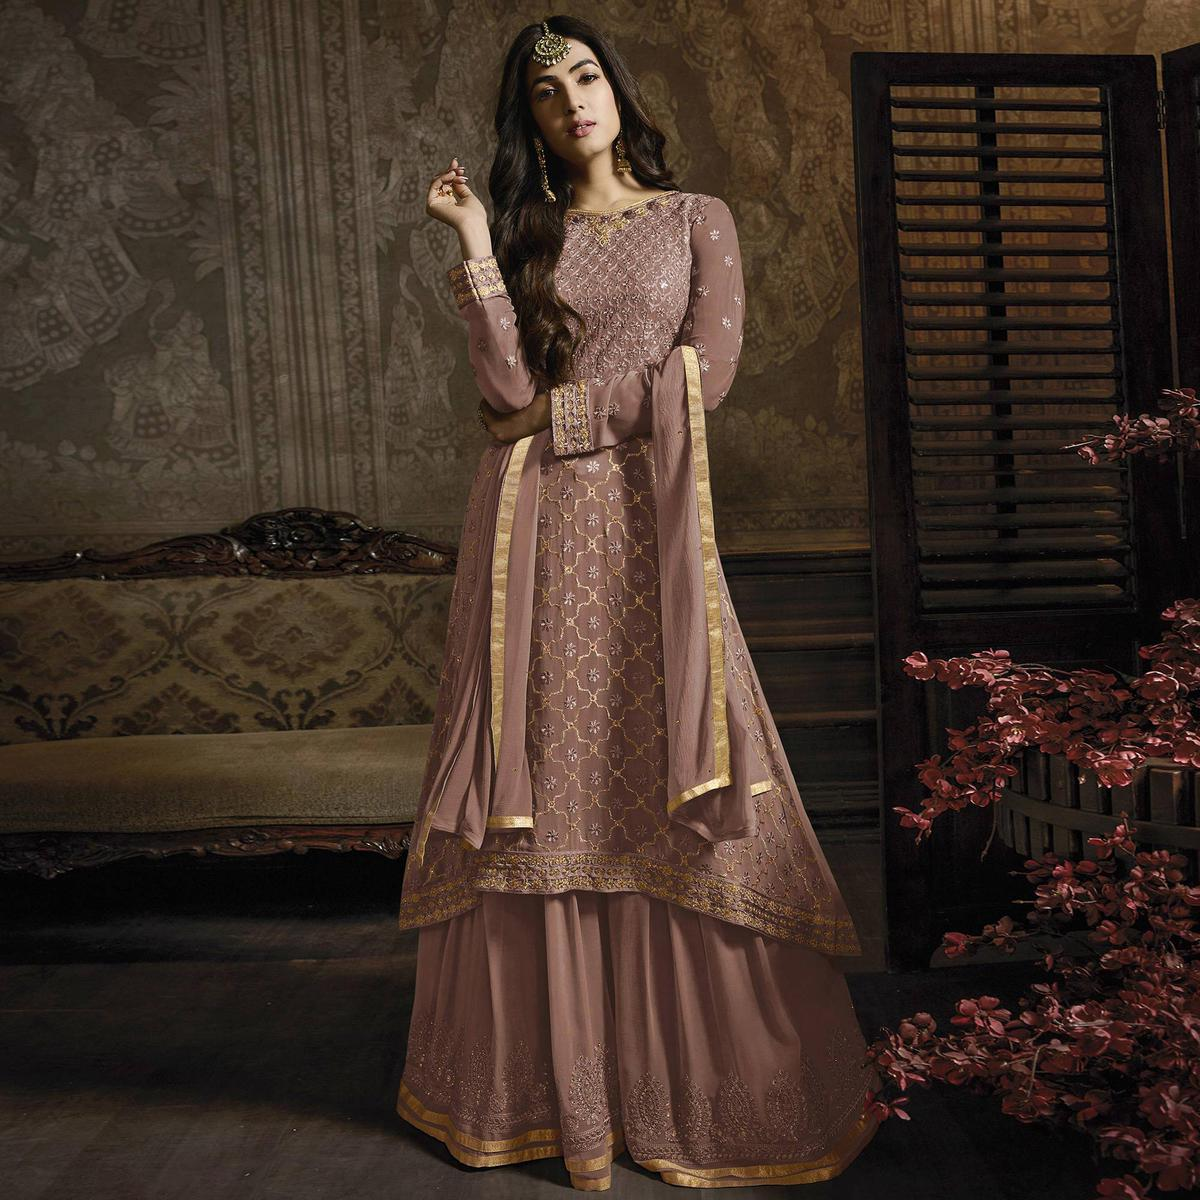 Ravishing Mauve Colored Partywear Embroidered Faux Georgette Lehenga Suit